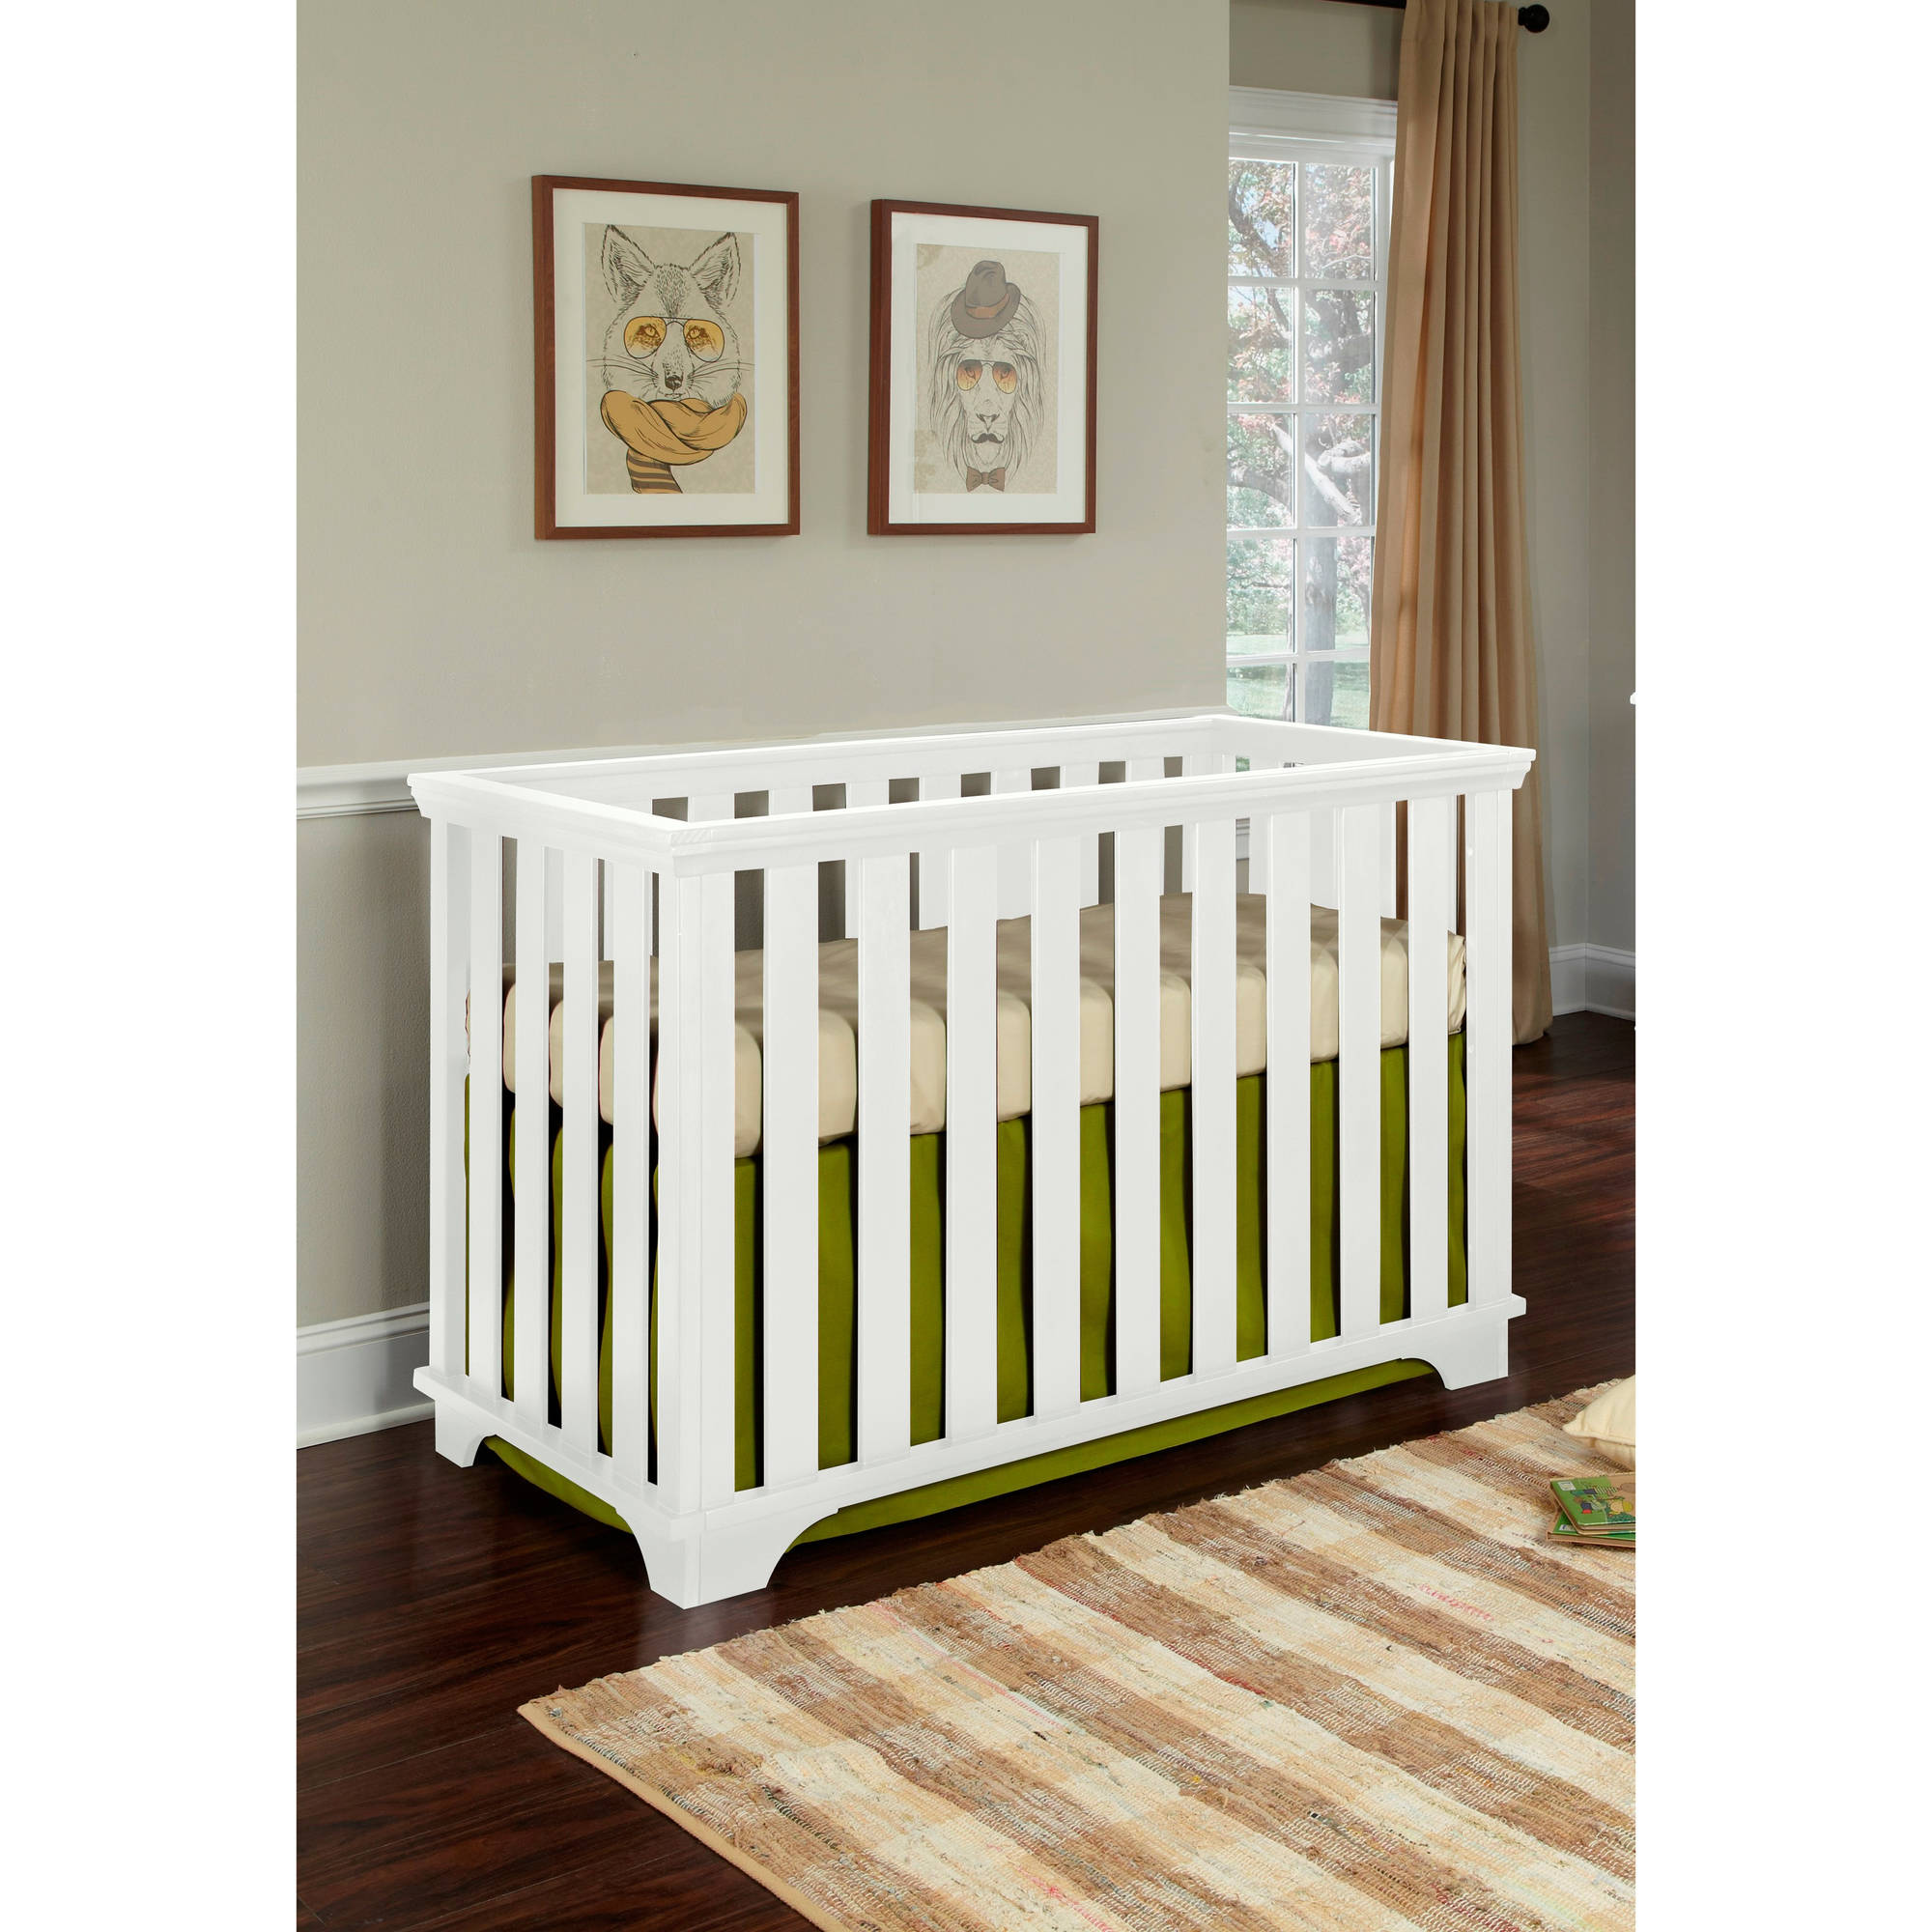 Imagio Baby Midtown Island 3-in-1 Convertible Fixed-Side Crib, White